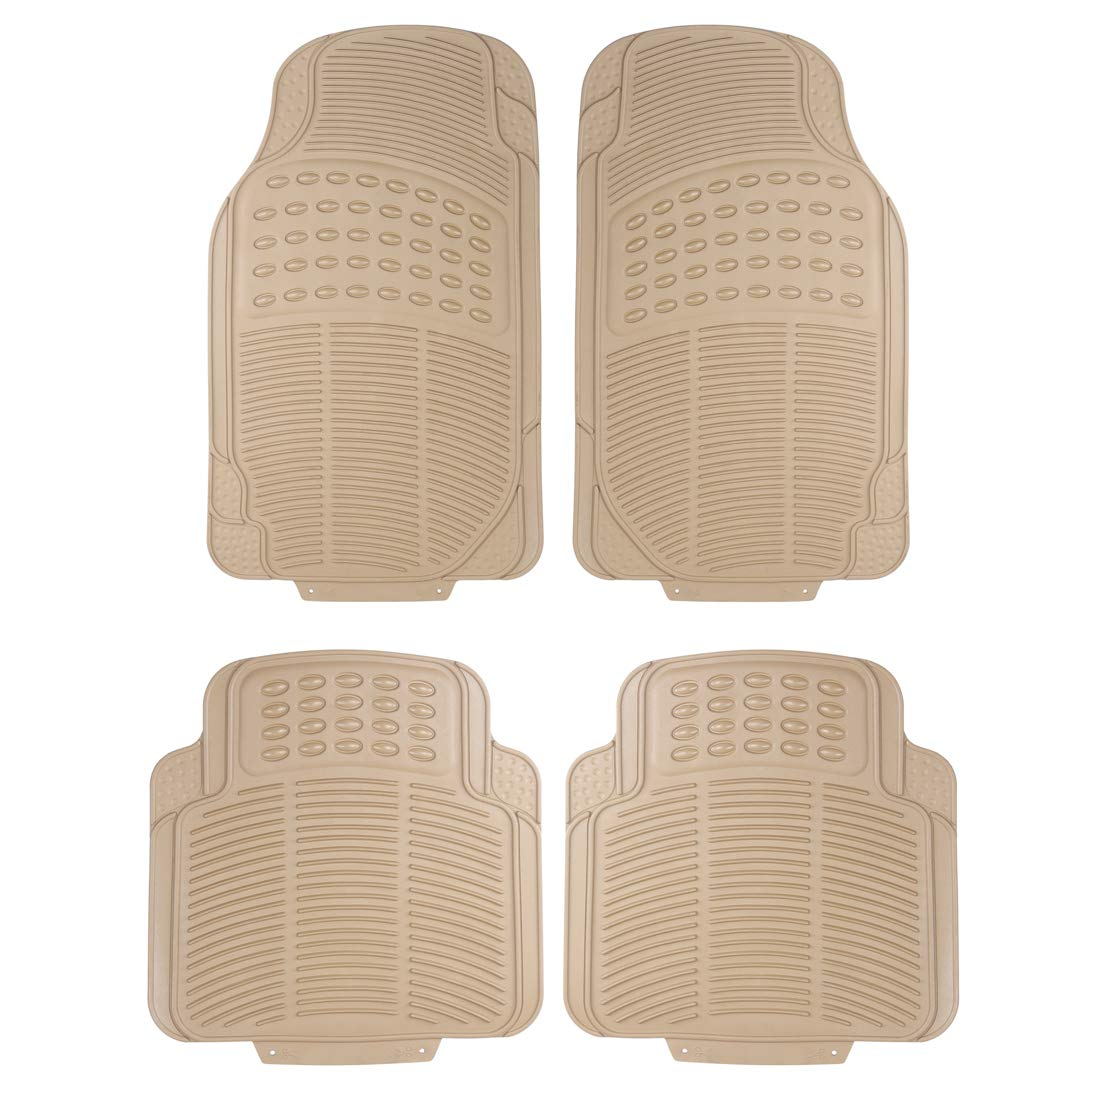 Sepia Eco Universal Car Floor Mat